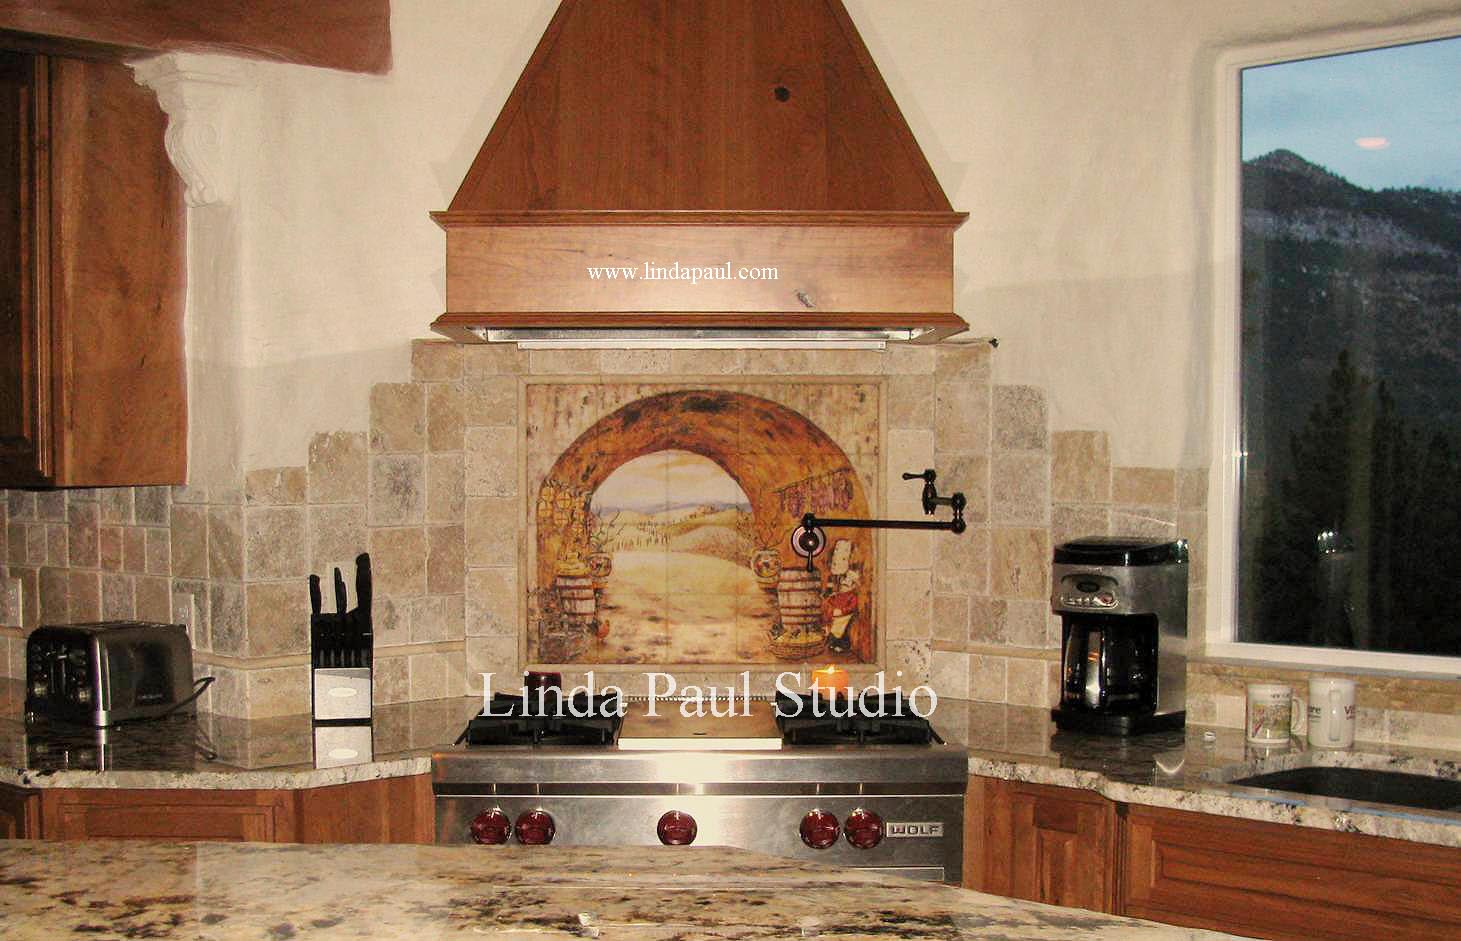 Kitchen backsplash ideas gallery of tile backsplash pictures designs - Backsplash ideas for kitchen ...